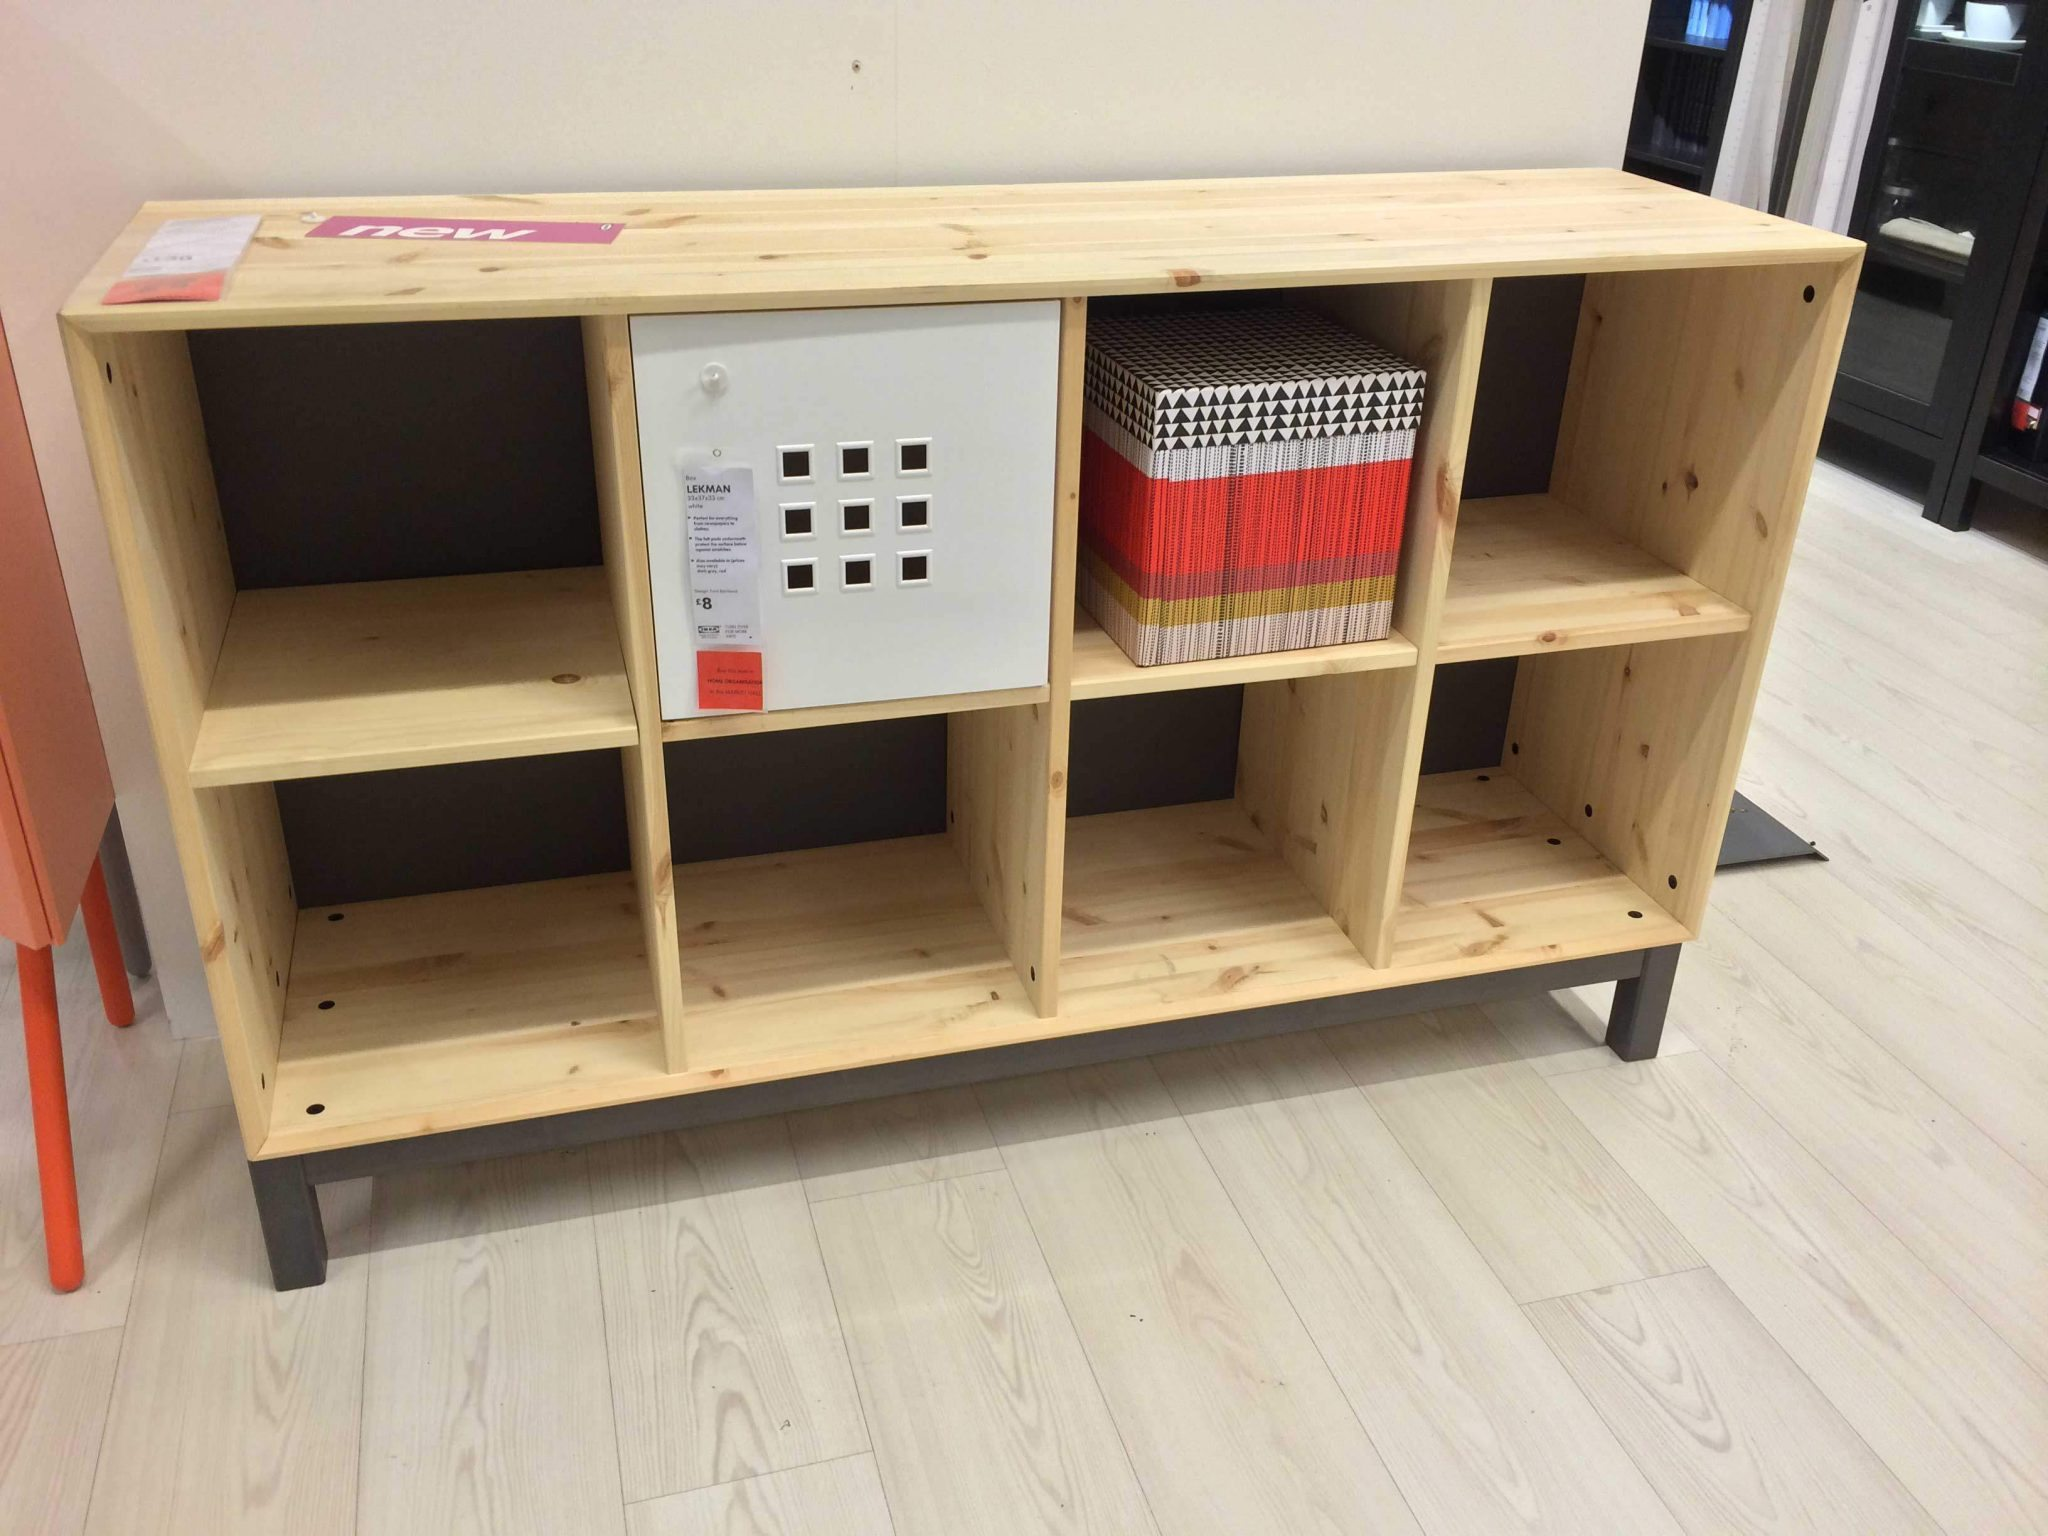 IKEA NORNÄS — the solid wood EXPEDIT alternative for DJs